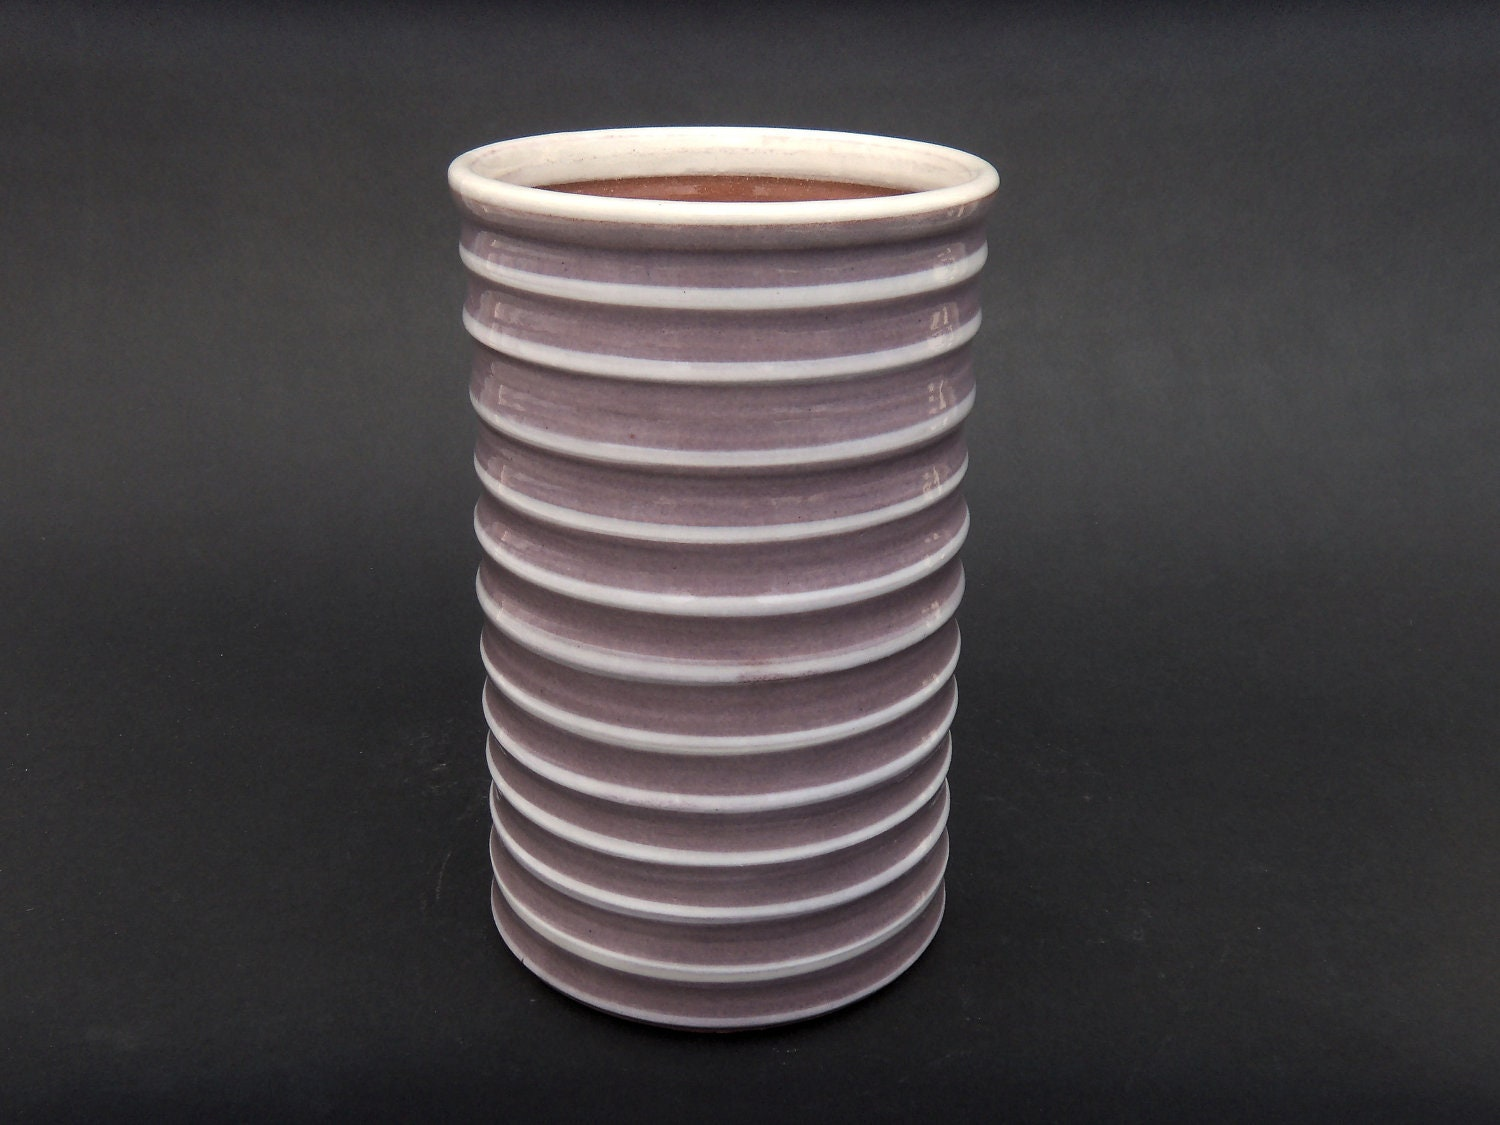 Wine Chiller - Striped Lilac and White Wine Coaster/Chiller - MiriamsKiln